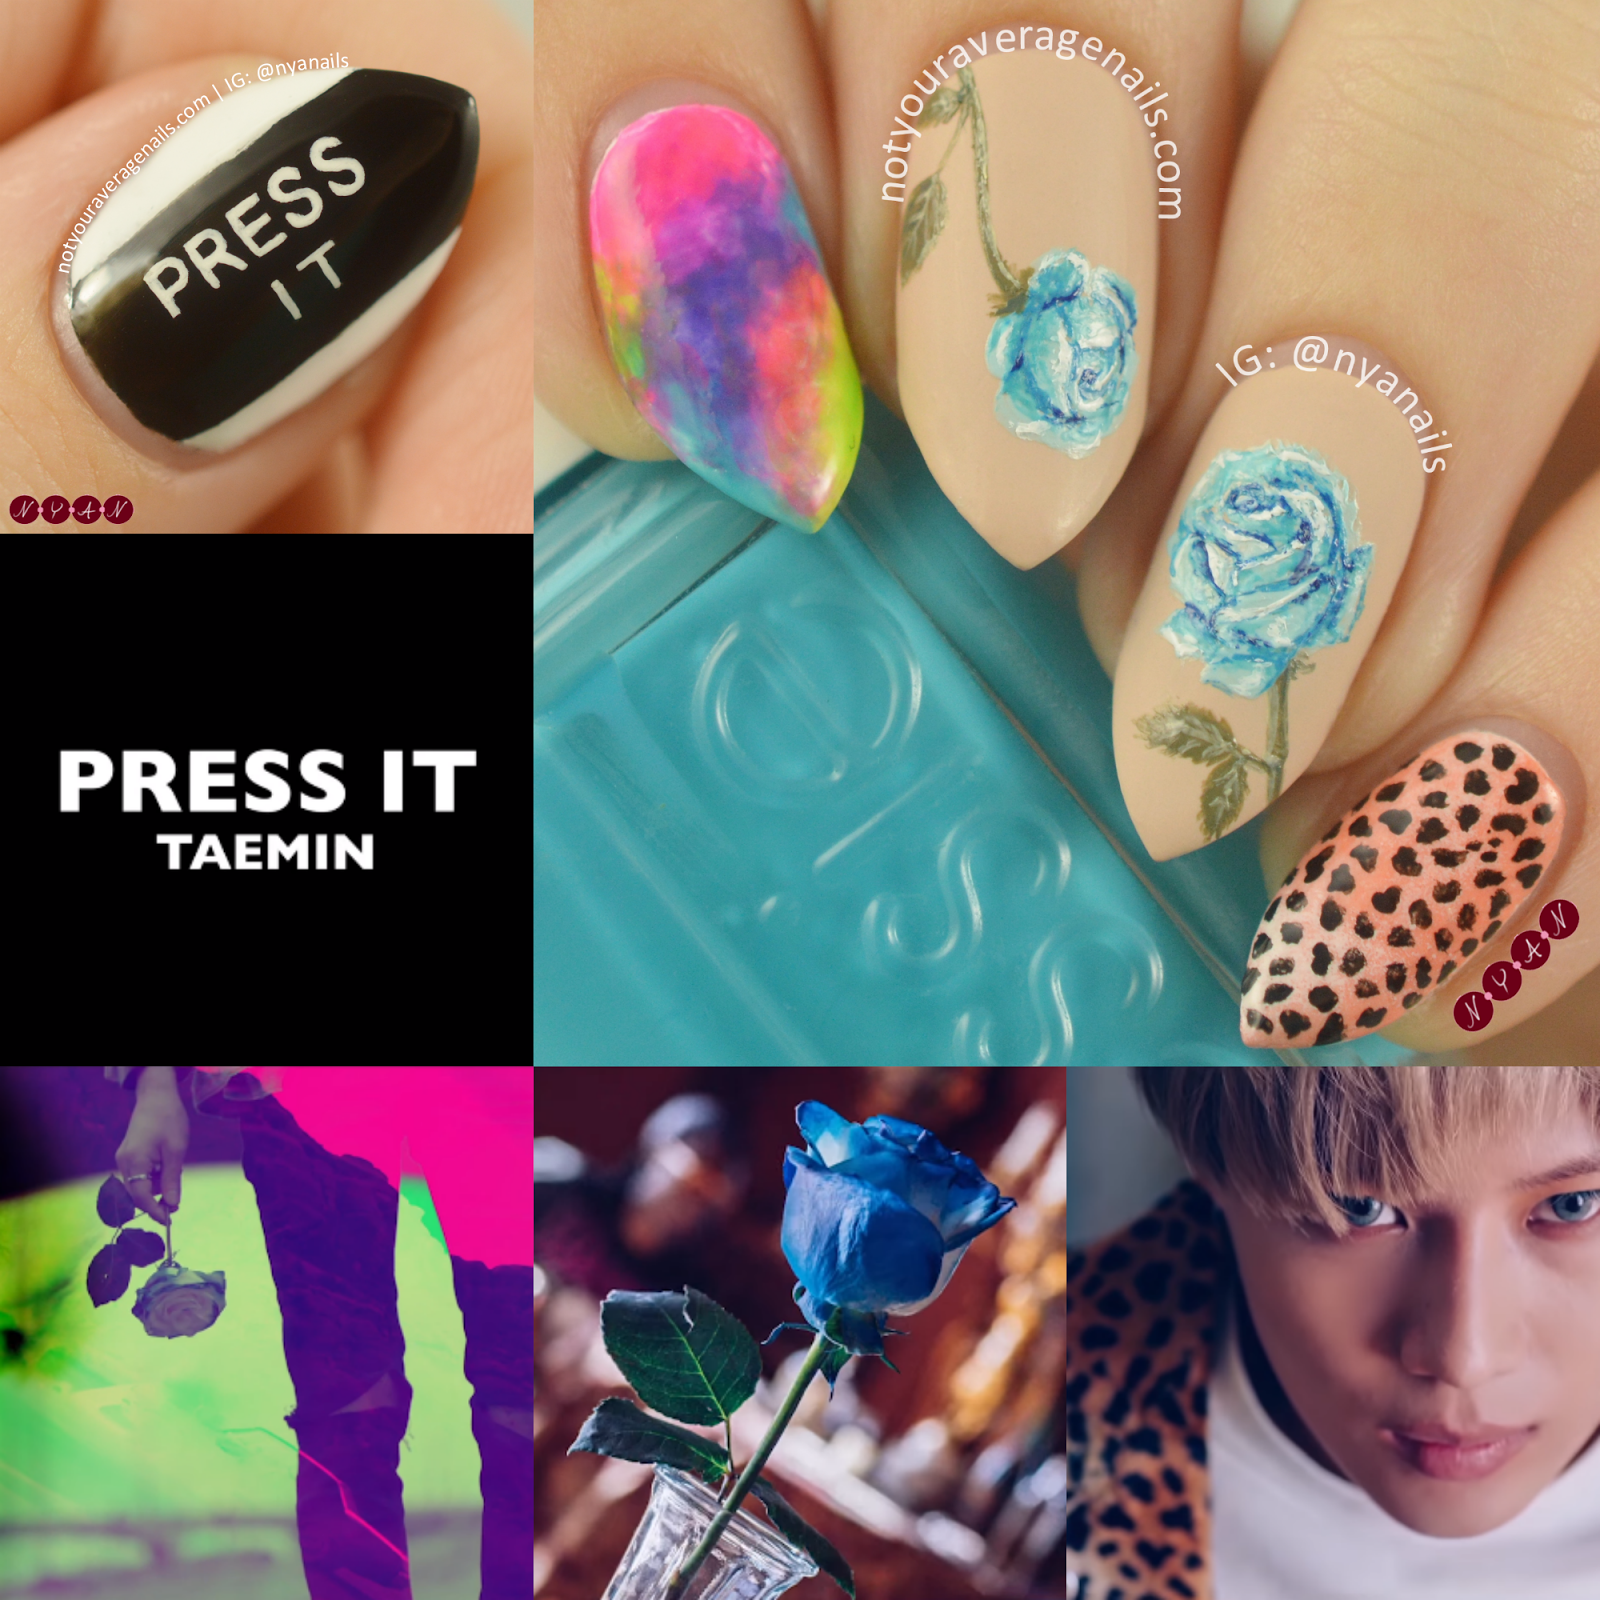 Taemin press your number nails | Nail art | Pinterest